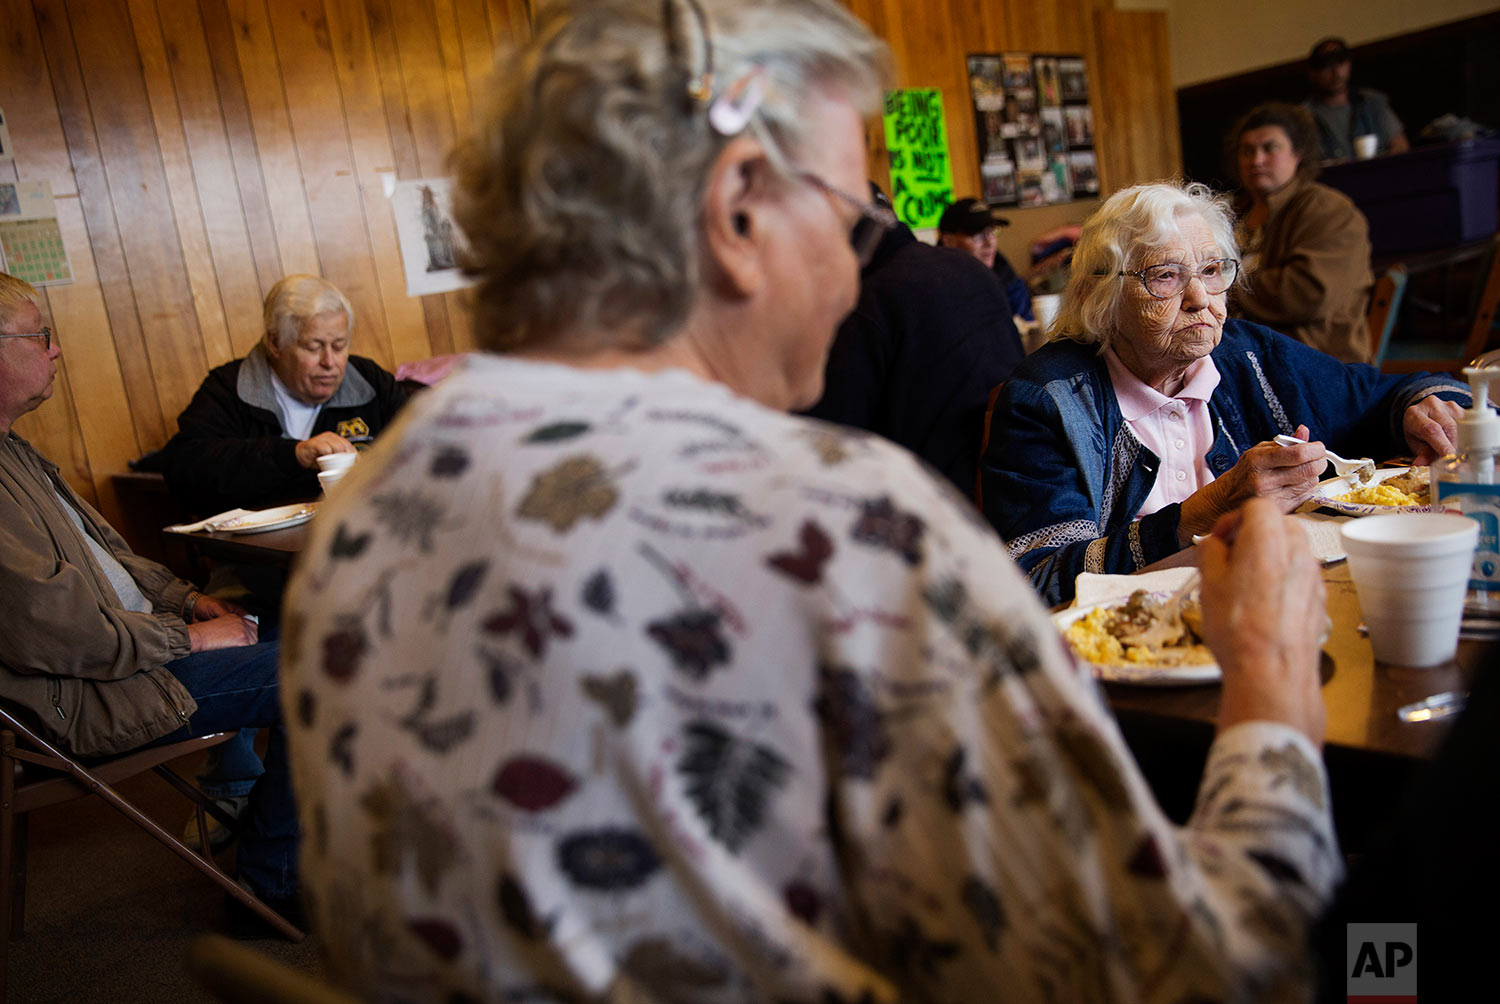 Verna MacDonald, 87, right, who is on Medicare, sits for a free meal put on for the community at Chaplains on the Harbor church in Westport, Wash., Thursday, June 15, 2017. The county's population is shrinking, growing sicker, growing poorer as many young and able move away. Just 15 percent of those left behind have college degrees. A quarter of children grow up poor. There is a critical shortage of doctors because it's hard to practice medicine in poor, rural places. (AP Photo/David Goldman)